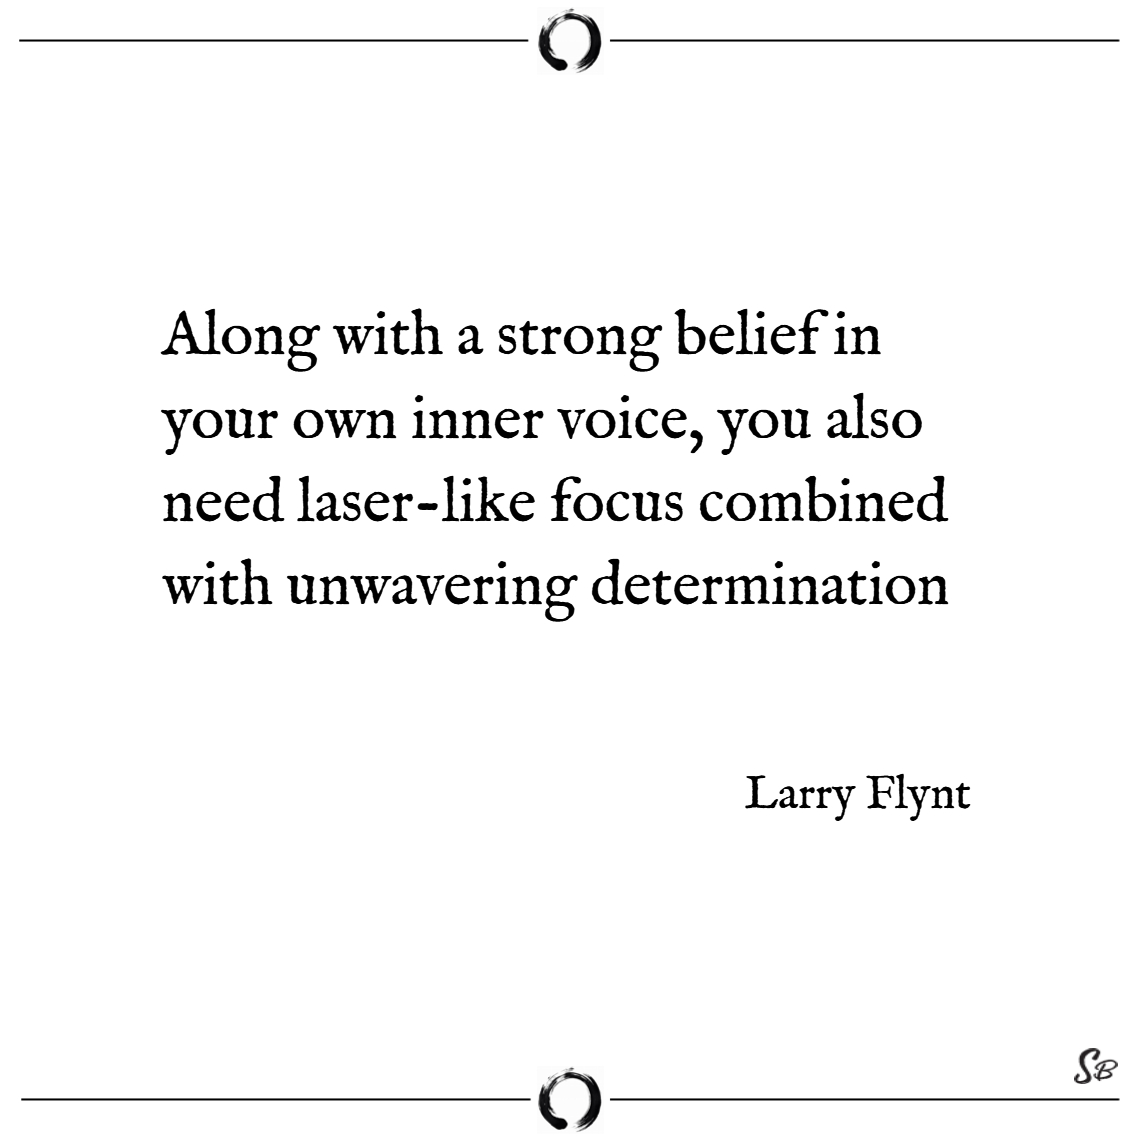 Along with a strong belief in your own inner voice